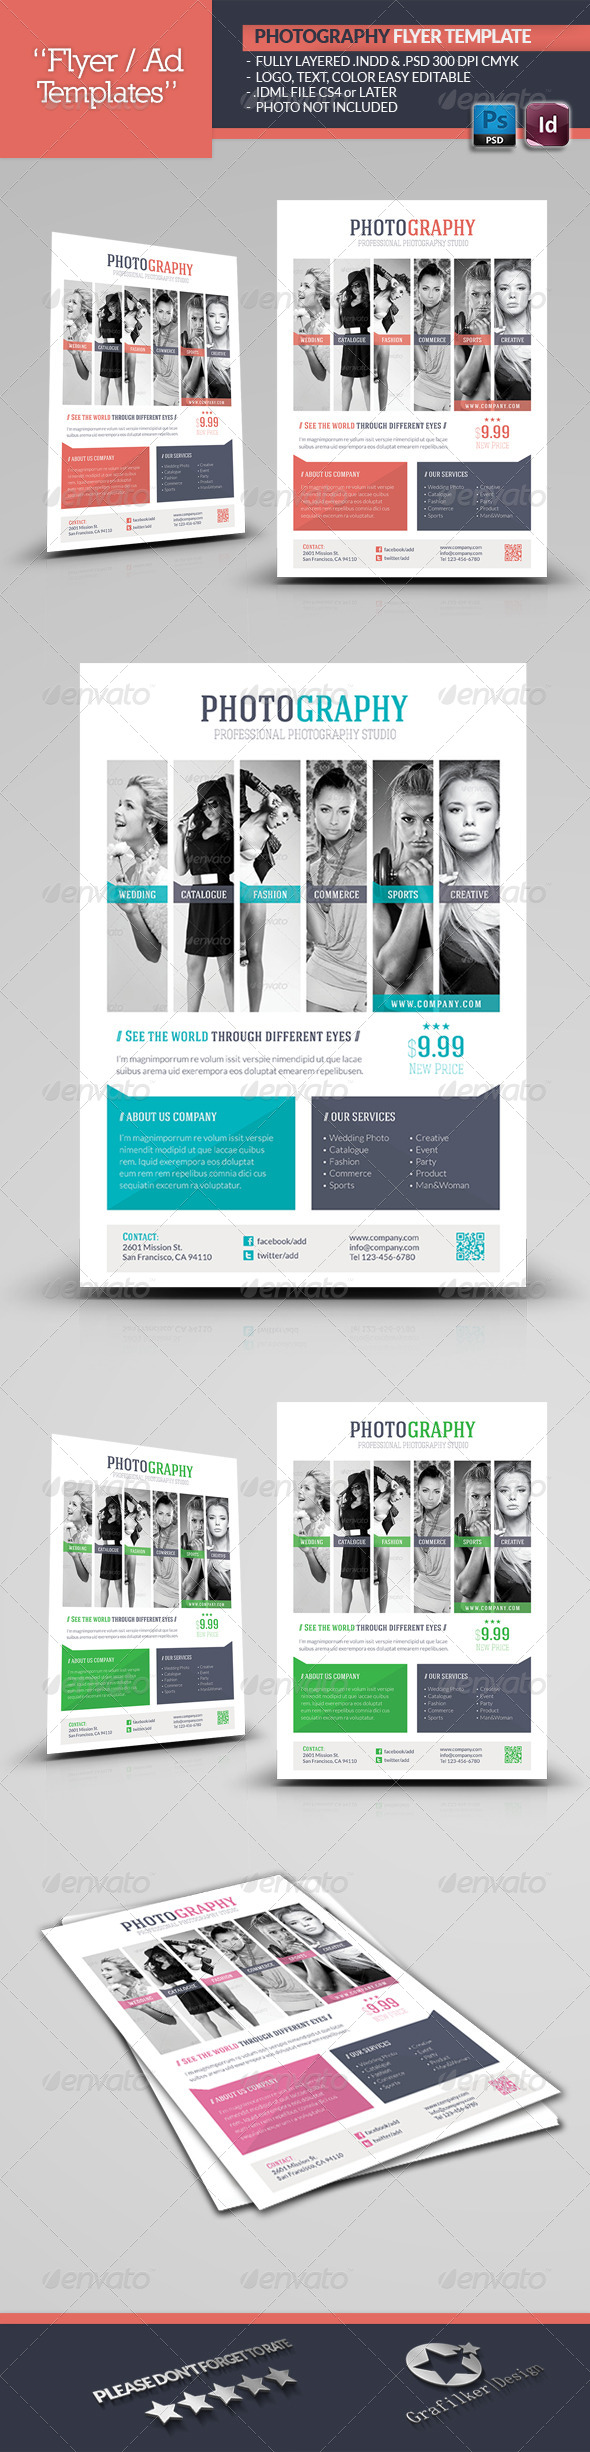 Photography Flyer Template by grafilker | GraphicRiver